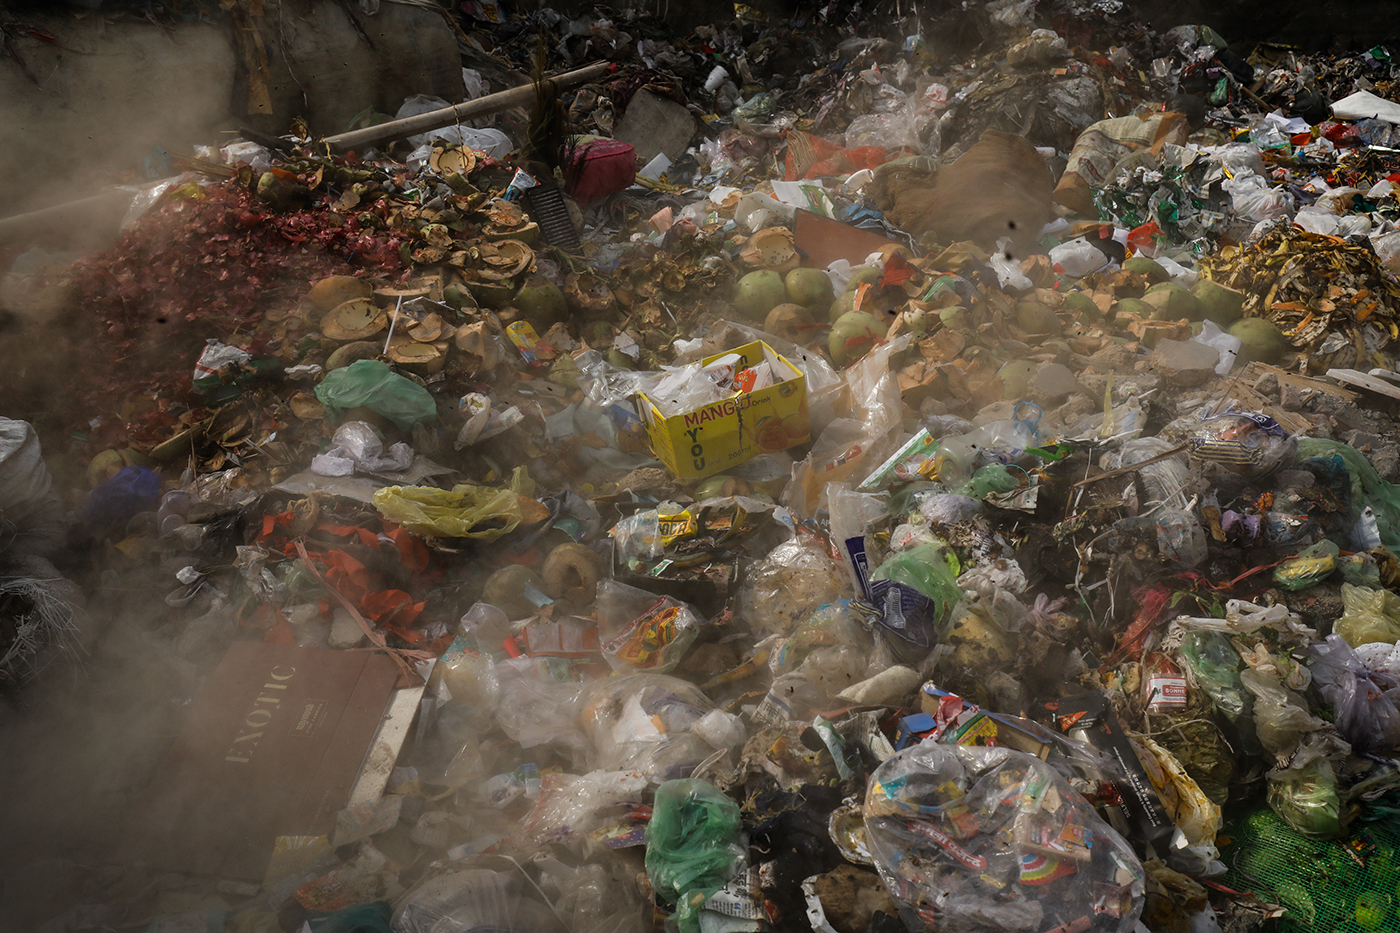 Dust rises as waste is dumped at a garbage collection point in New Delhi, India.